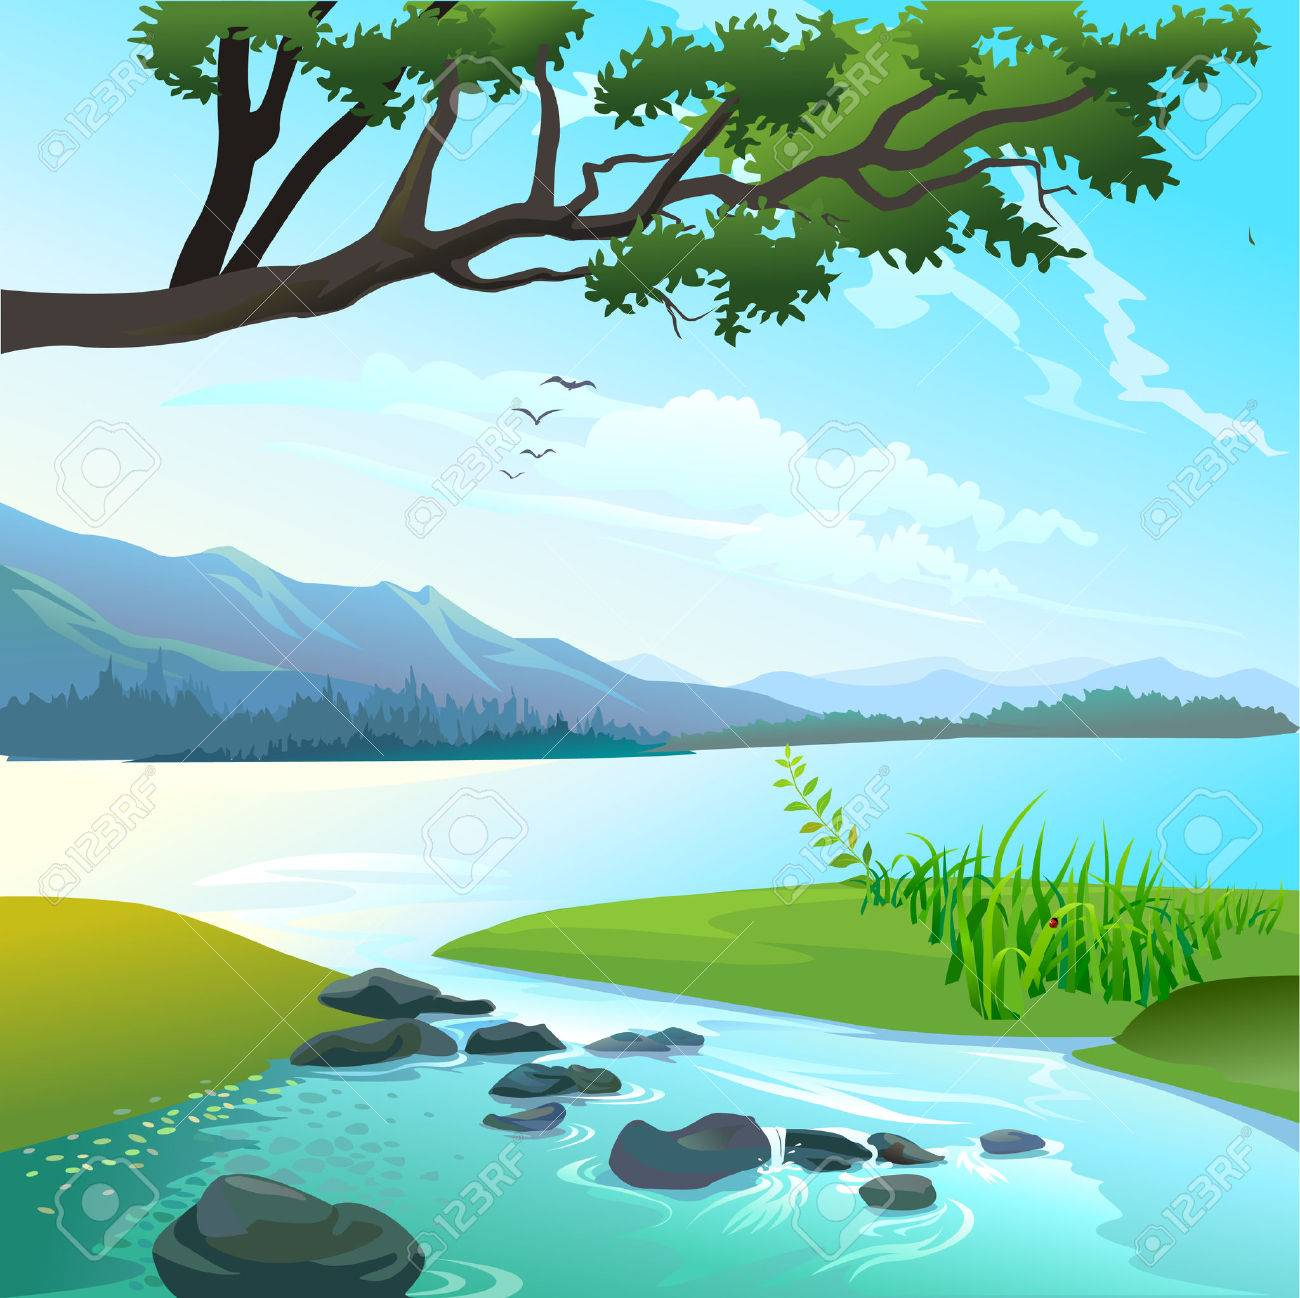 river landscape vector royalty free cliparts vectors and stock illustration image 43797424 river landscape vector